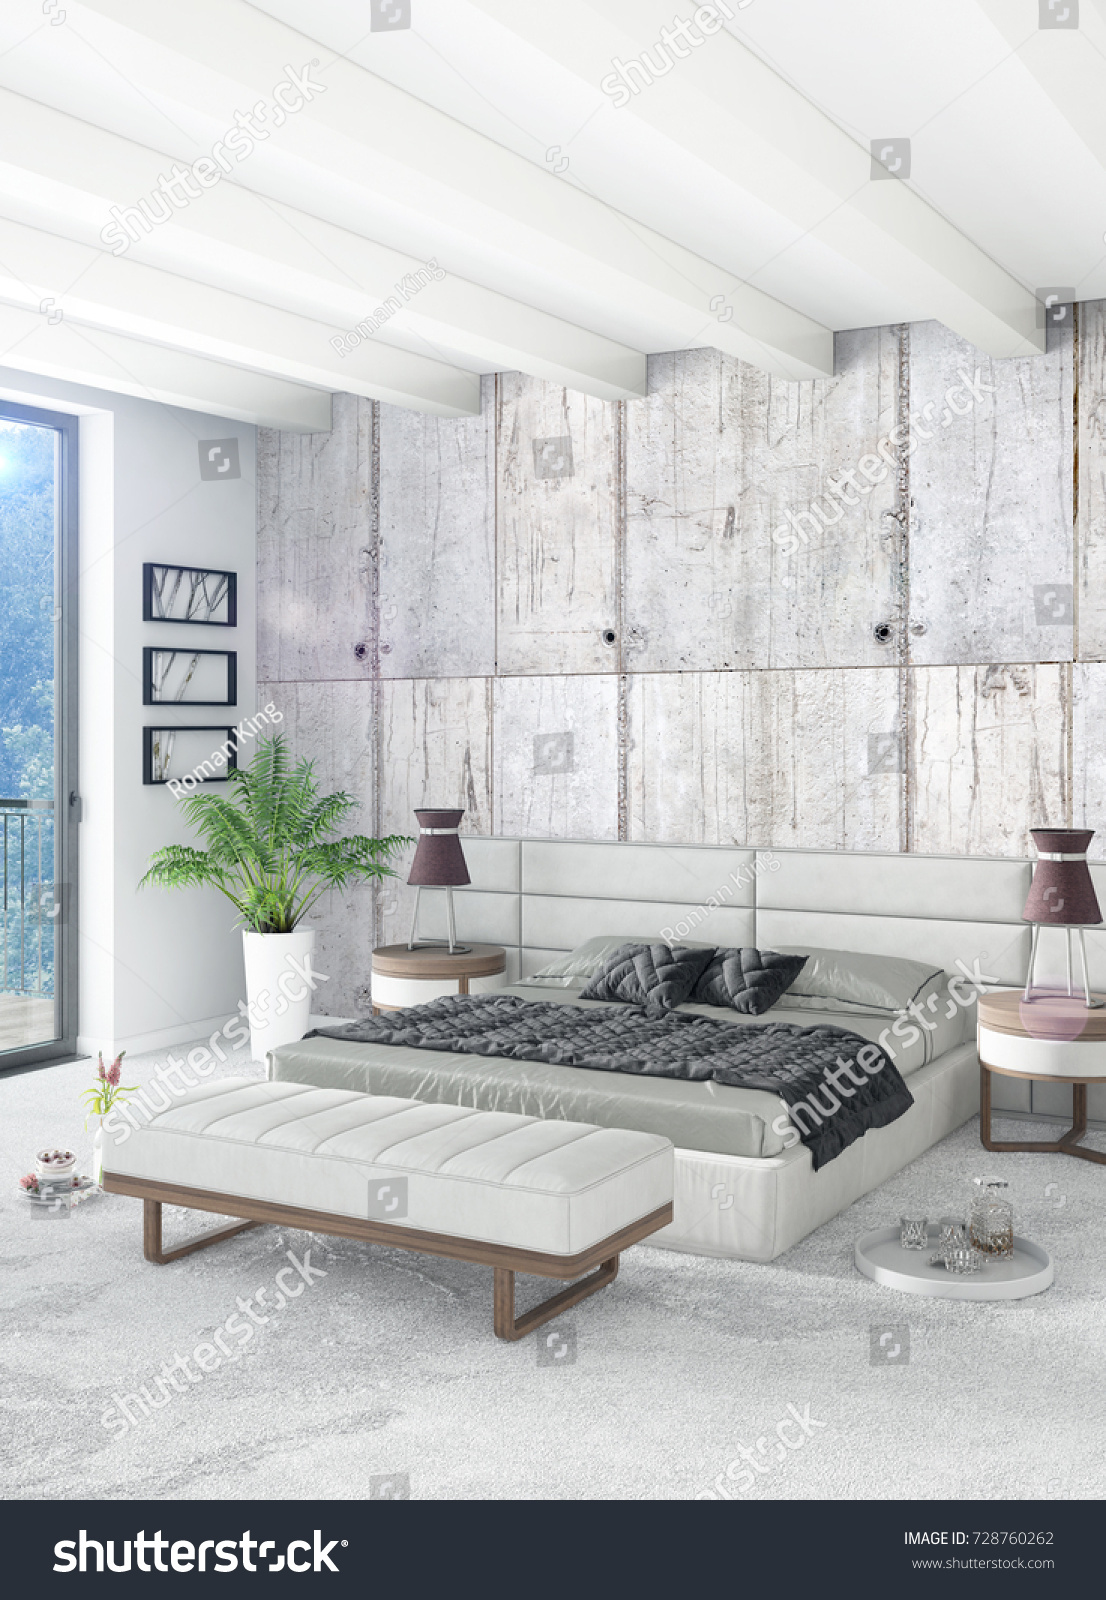 Loft bedroom in modern style interior design with eclectic wall and stylish sofa 3d rendering ez canvas